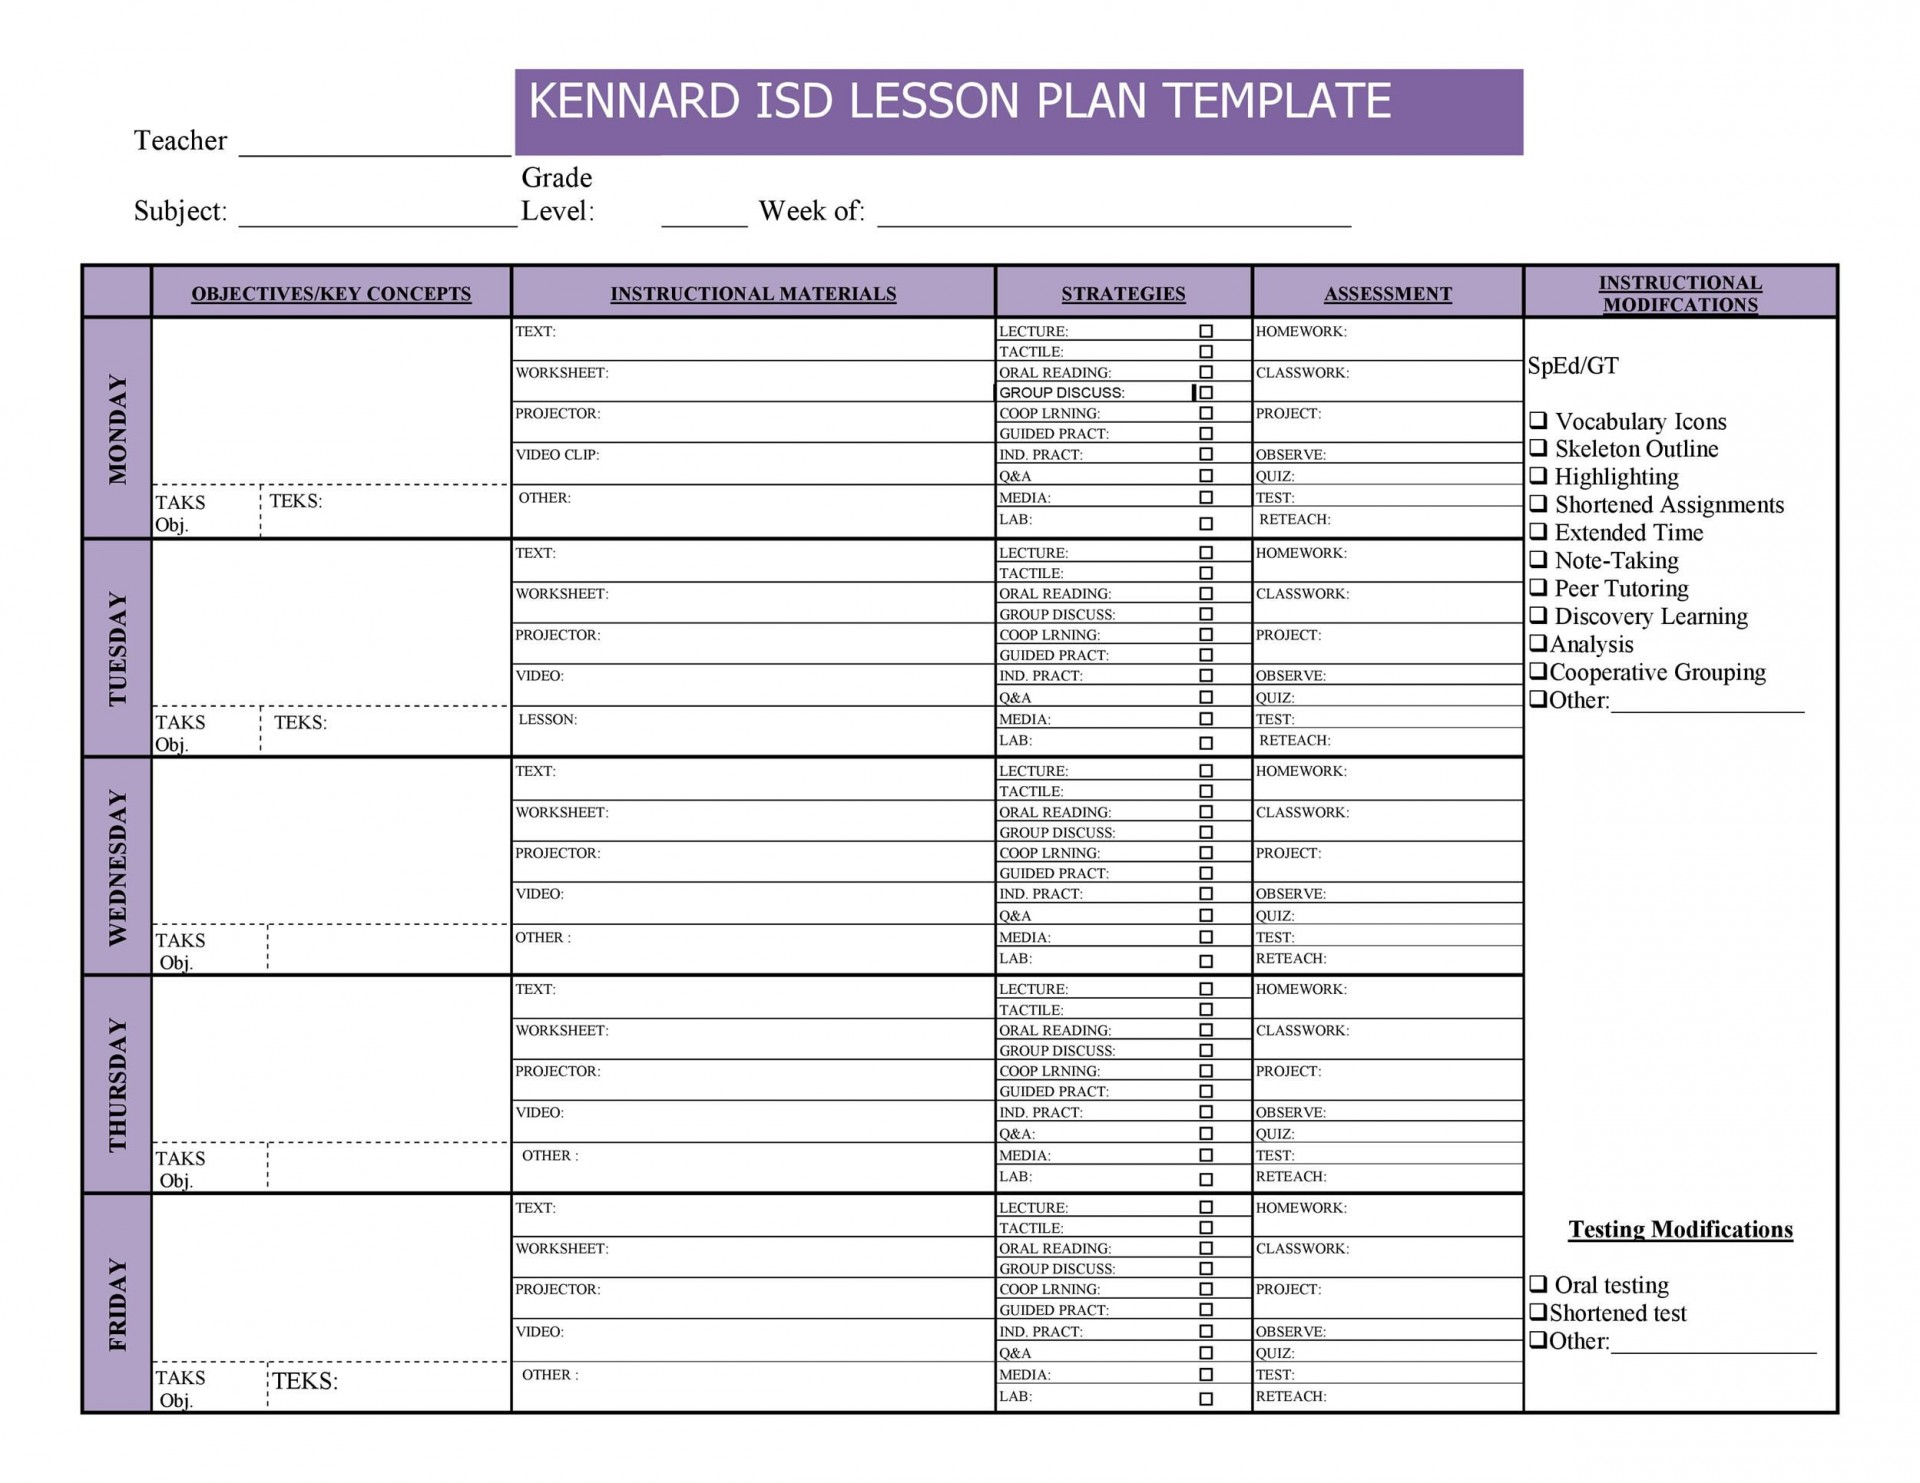 006 Astounding Blank Weekly Lesson Plan Template Highest Clarity  Printable Pdf Free Editable1920